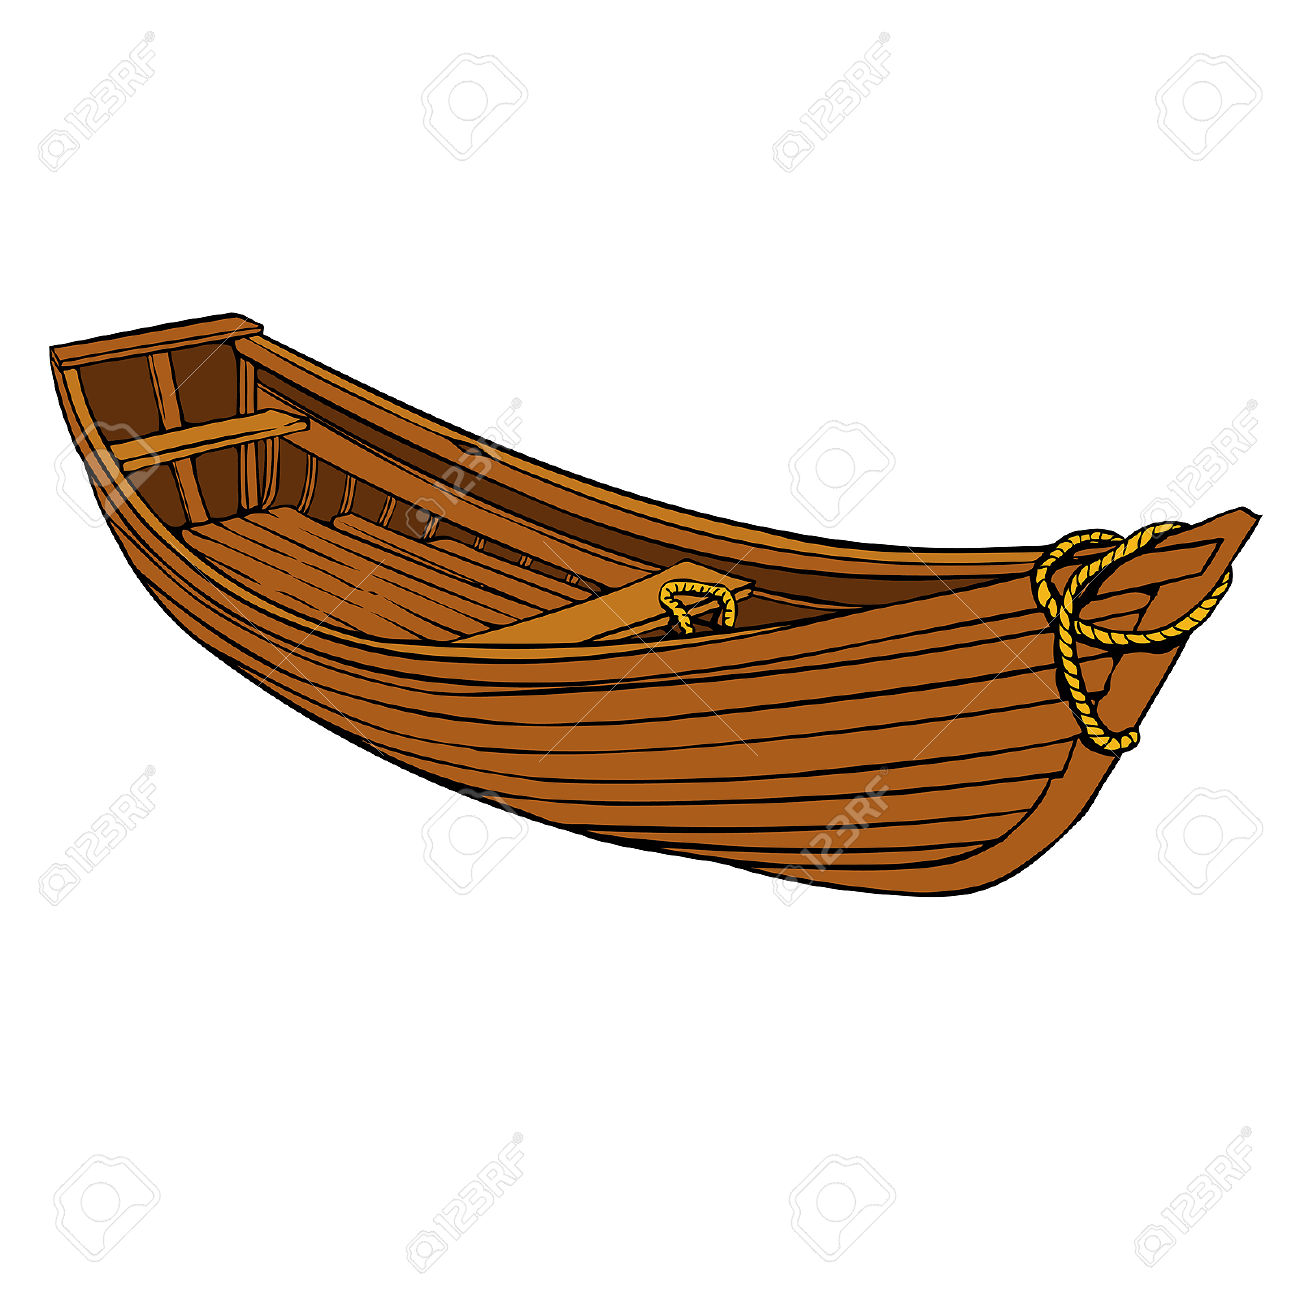 Simple Cartoon Wooden Boat Or Canoe For Fishing Royalty Free.